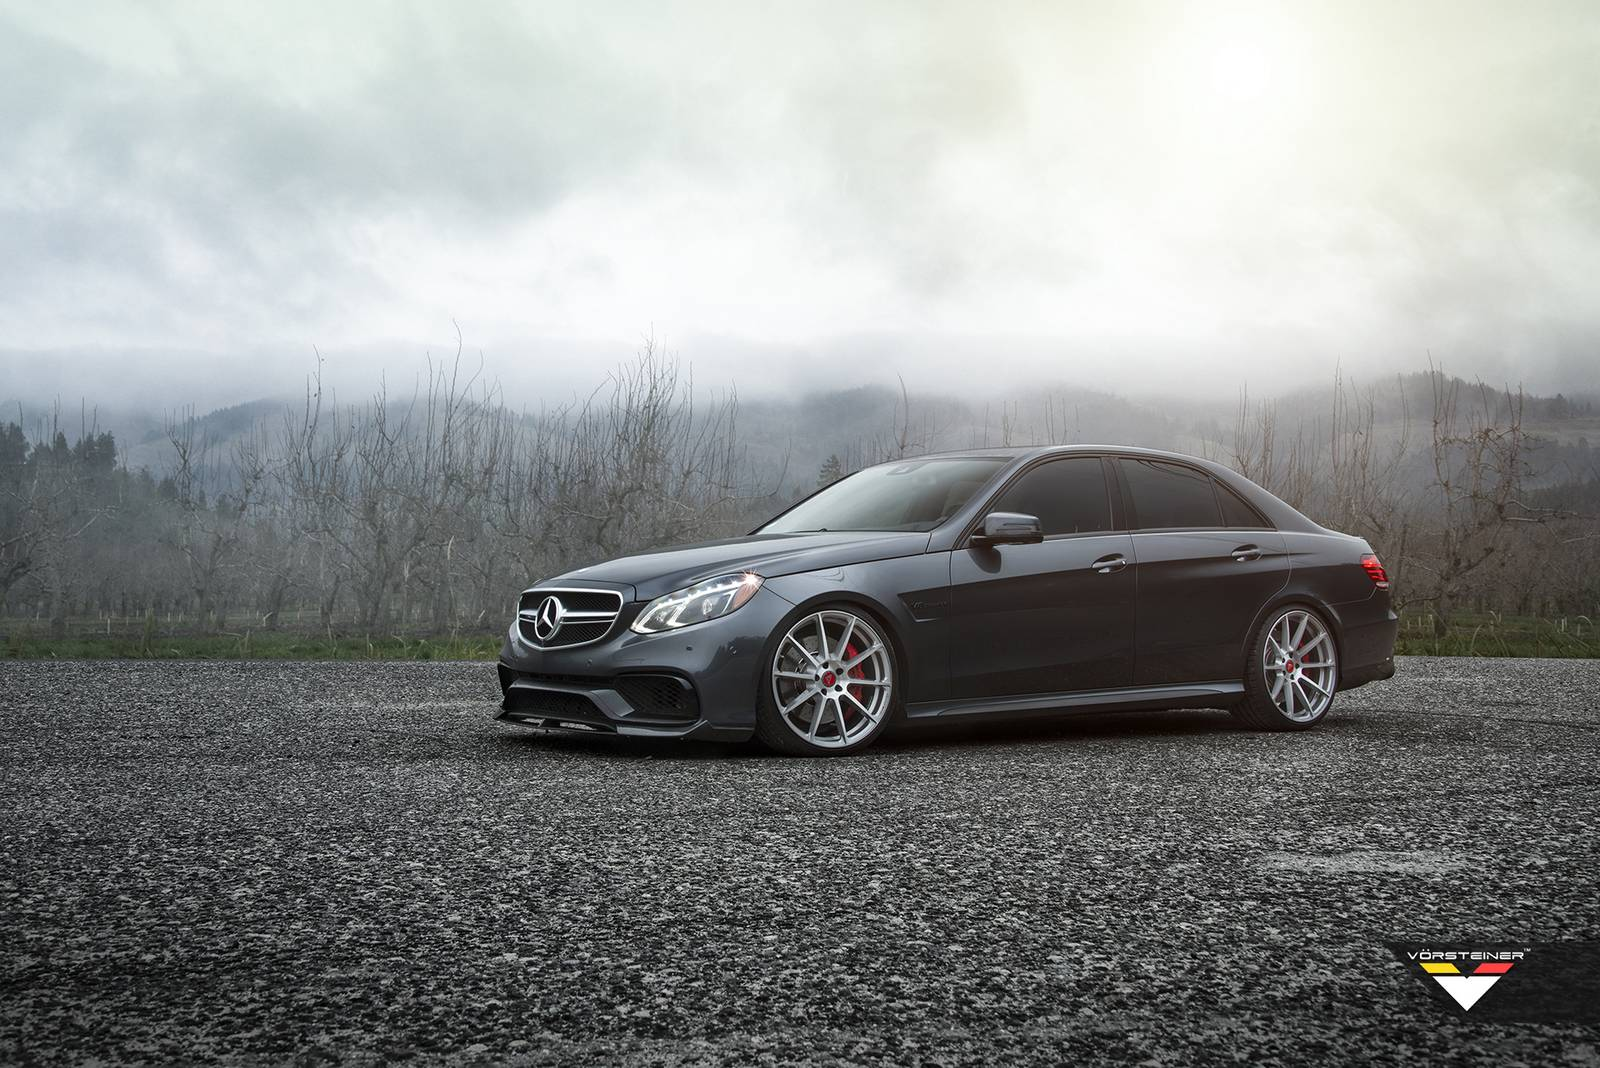 Official vorsteiner mercedes benz e63 amg aero program for Mercedes benz e class e63 amg